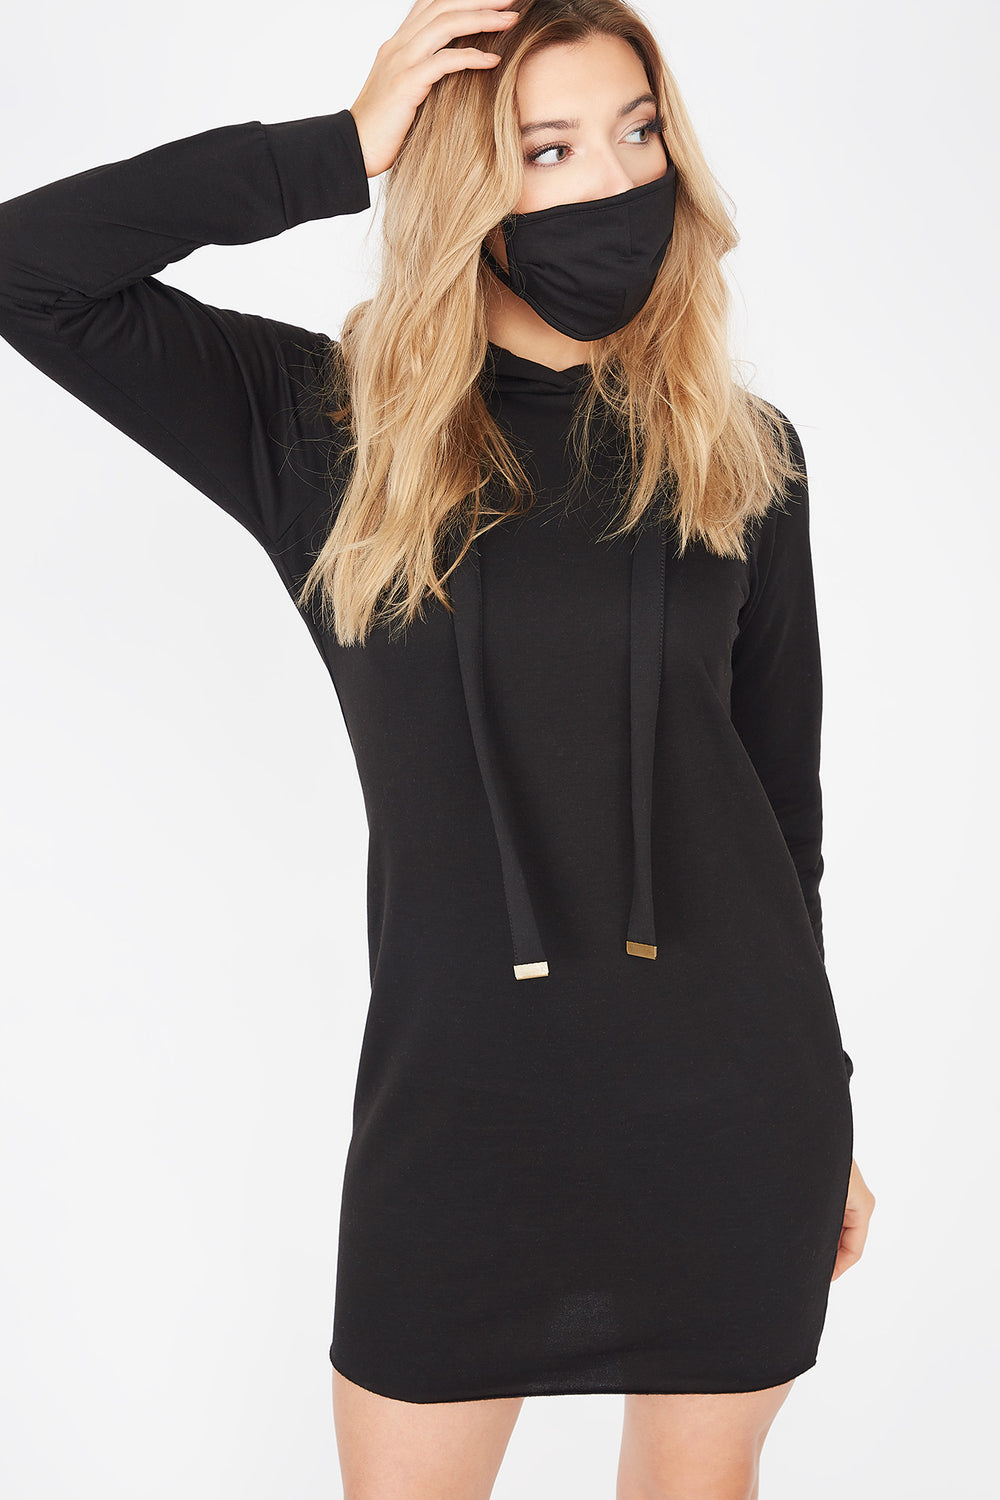 2-Piece Soft Fleece Hoodie Dress With Washable & Reusable Protective Face Mask Set Black